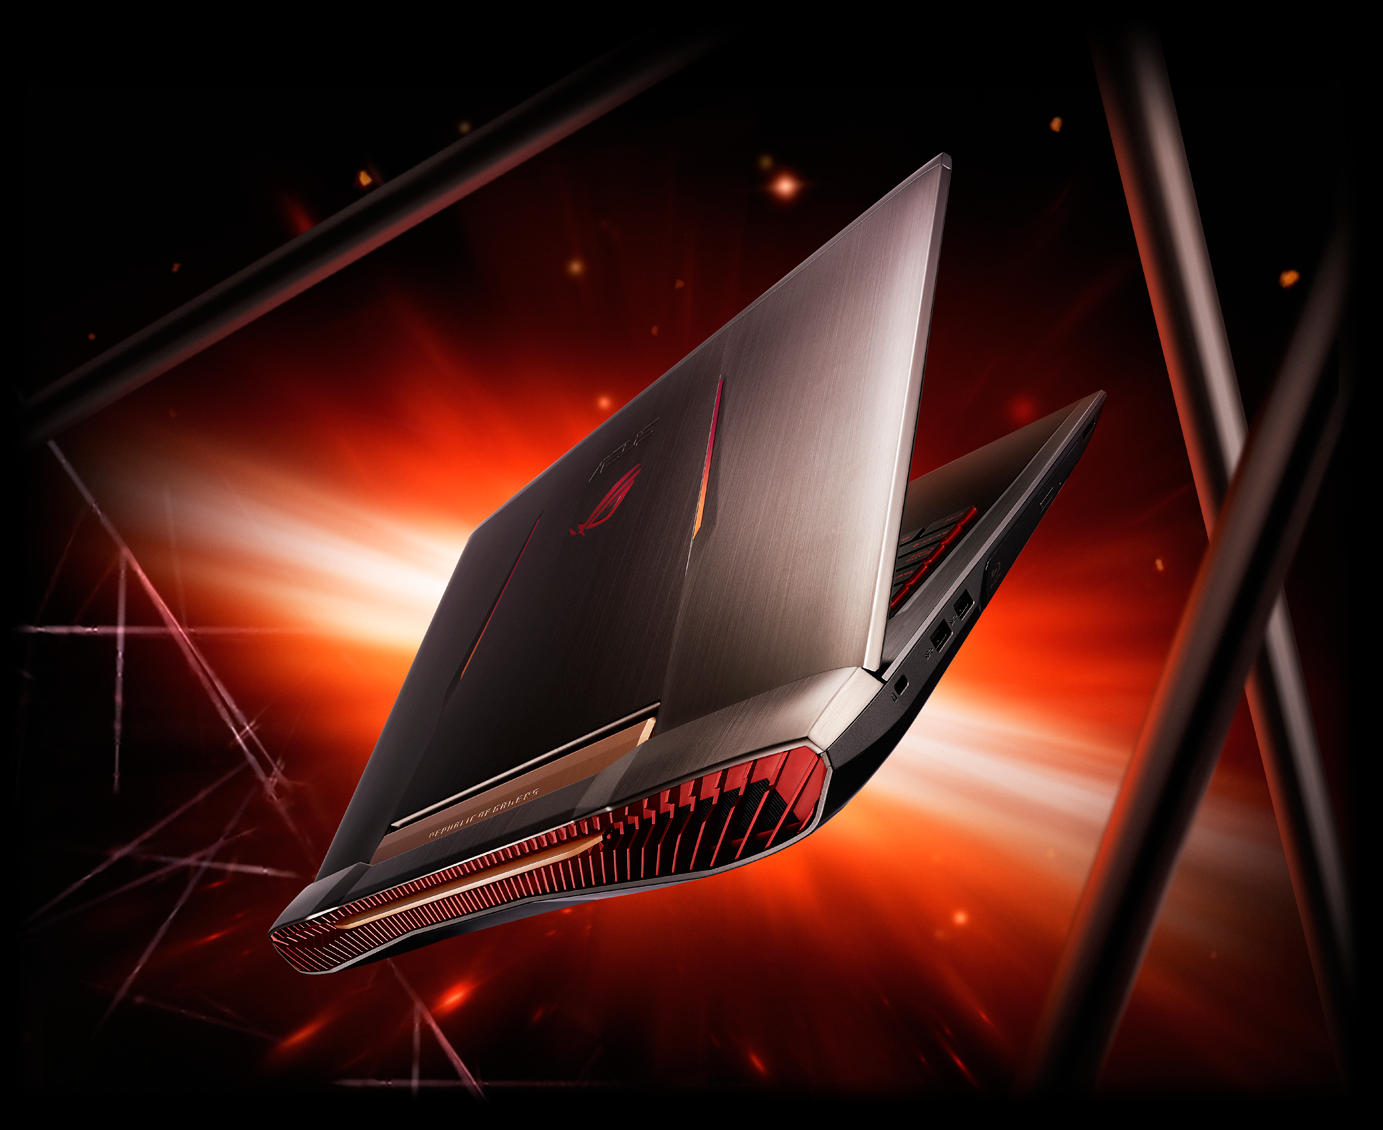 Rog g752vs laptops asus usa stopboris Image collections